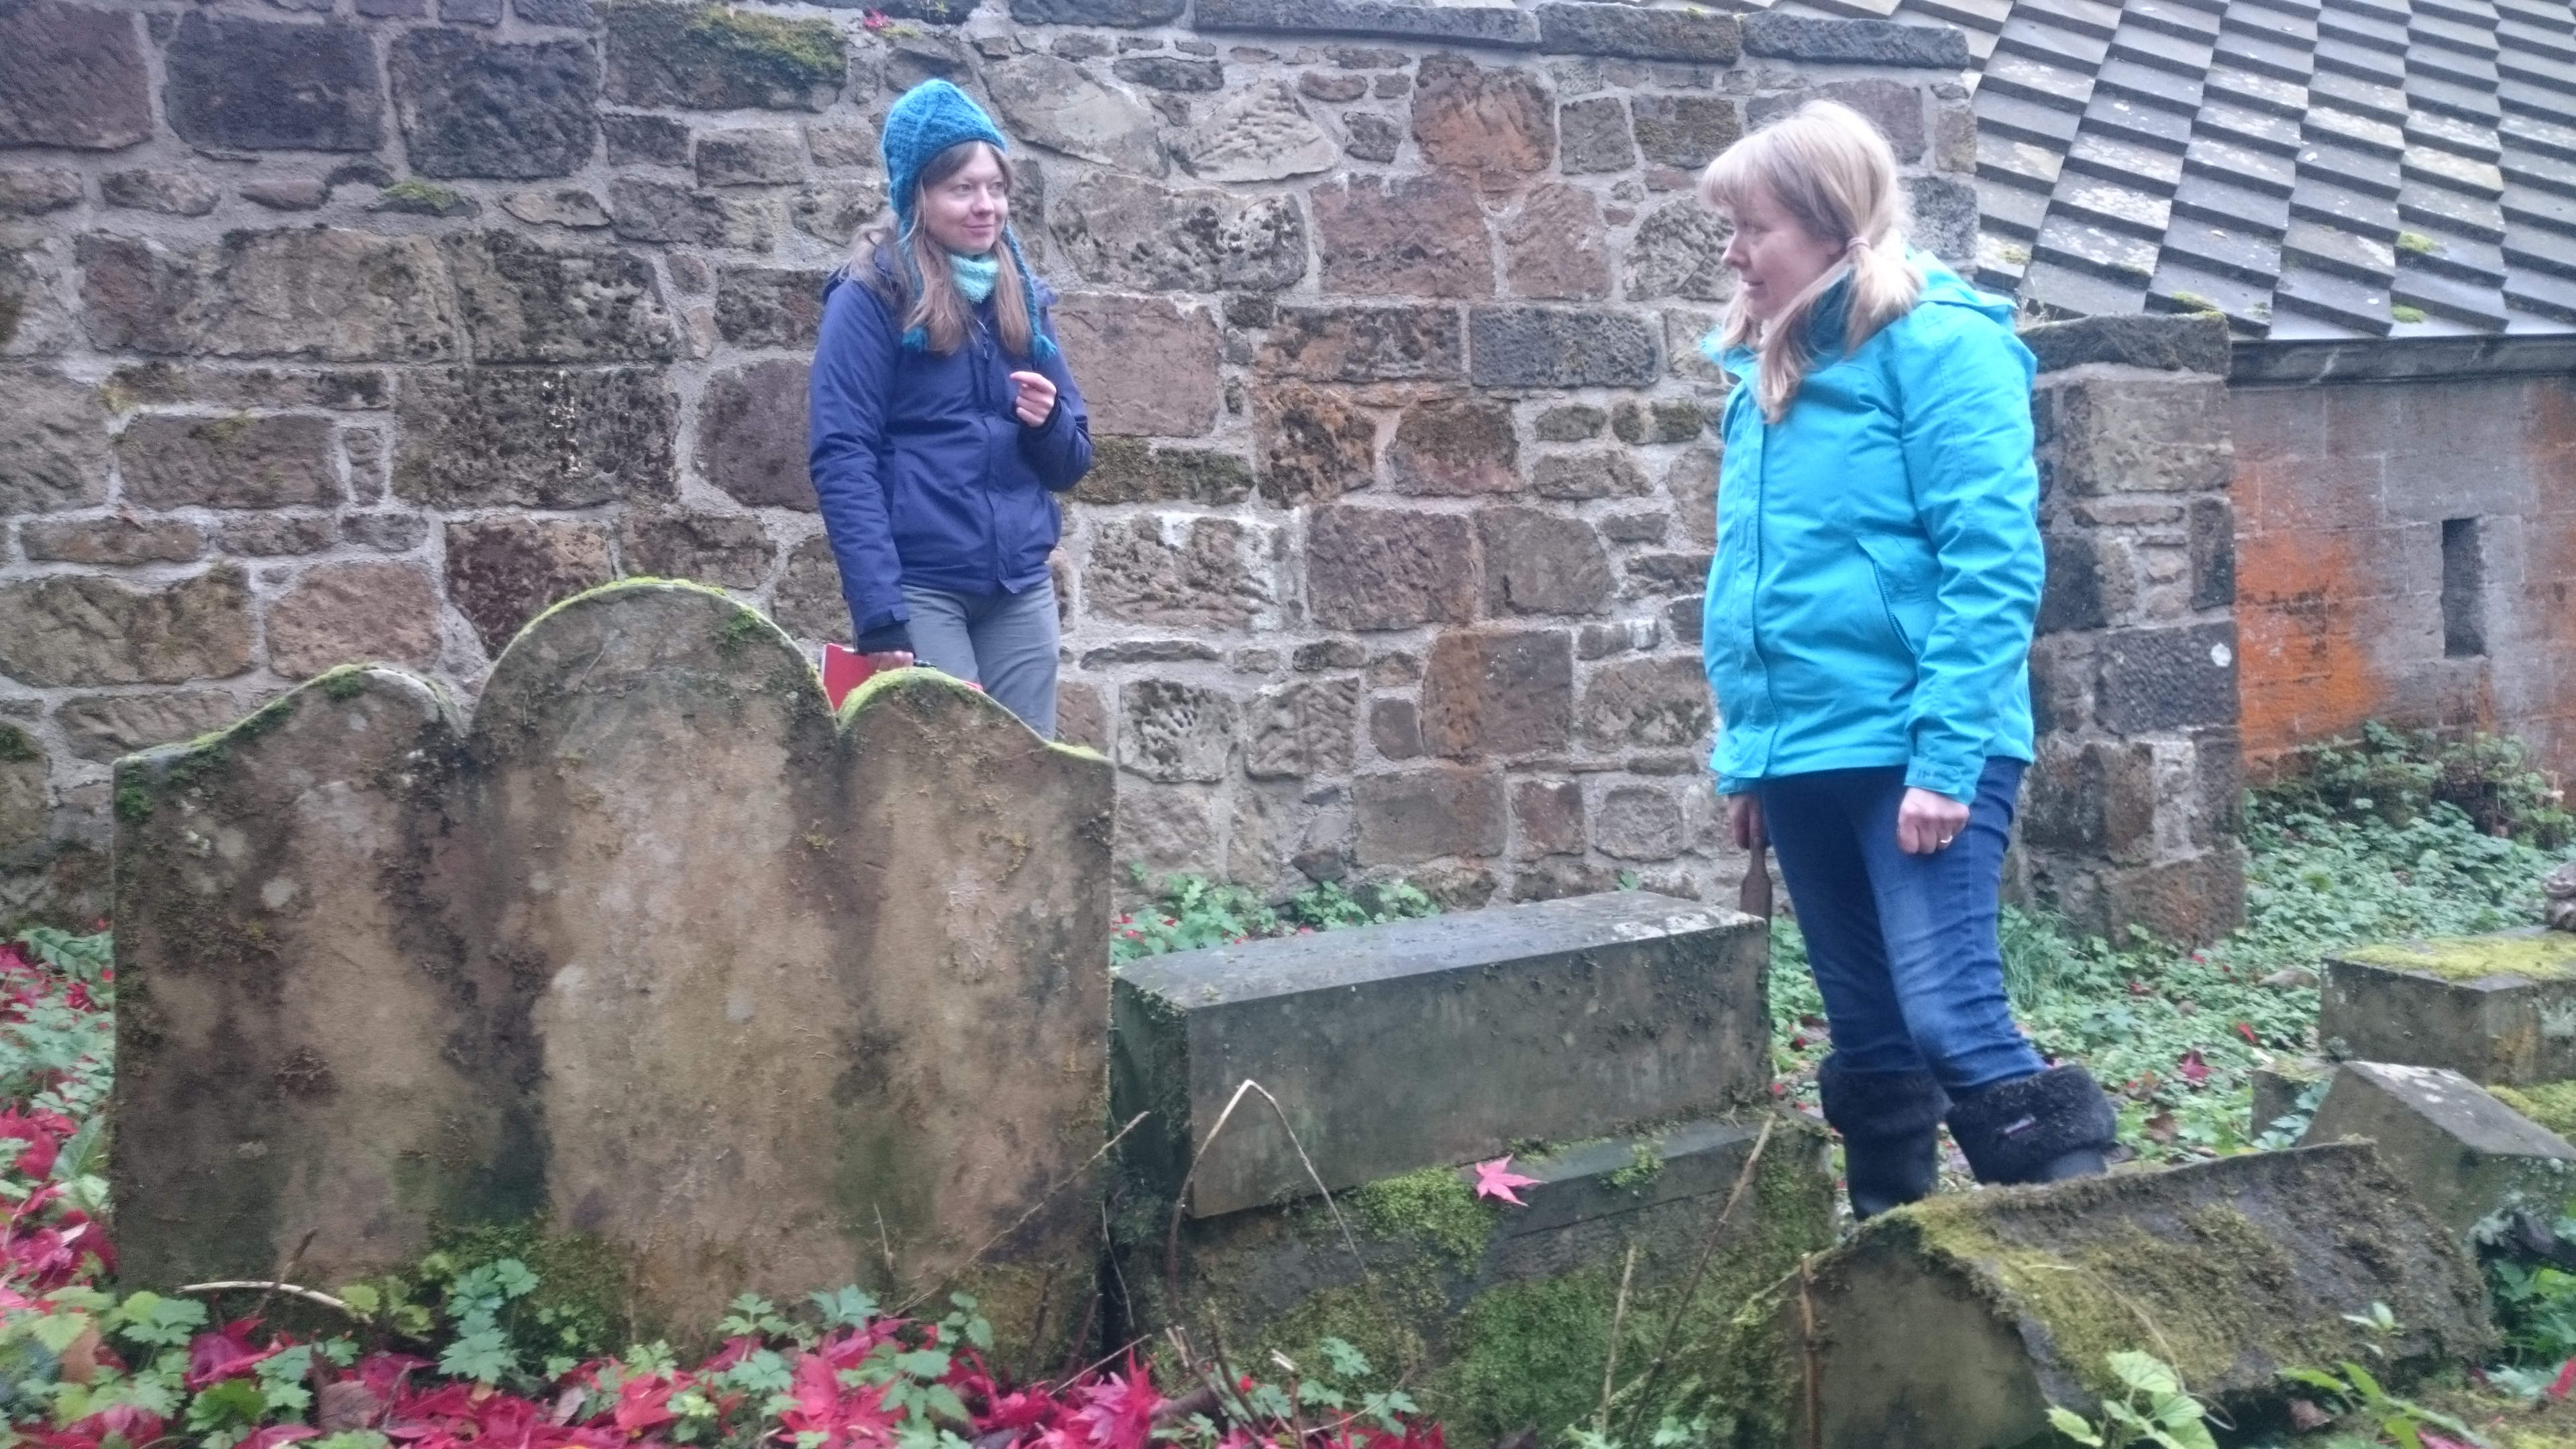 Volunteer to help restore and record St Patrick's Graveyard at Dalzell Estate, Noth Lanarkshire Council